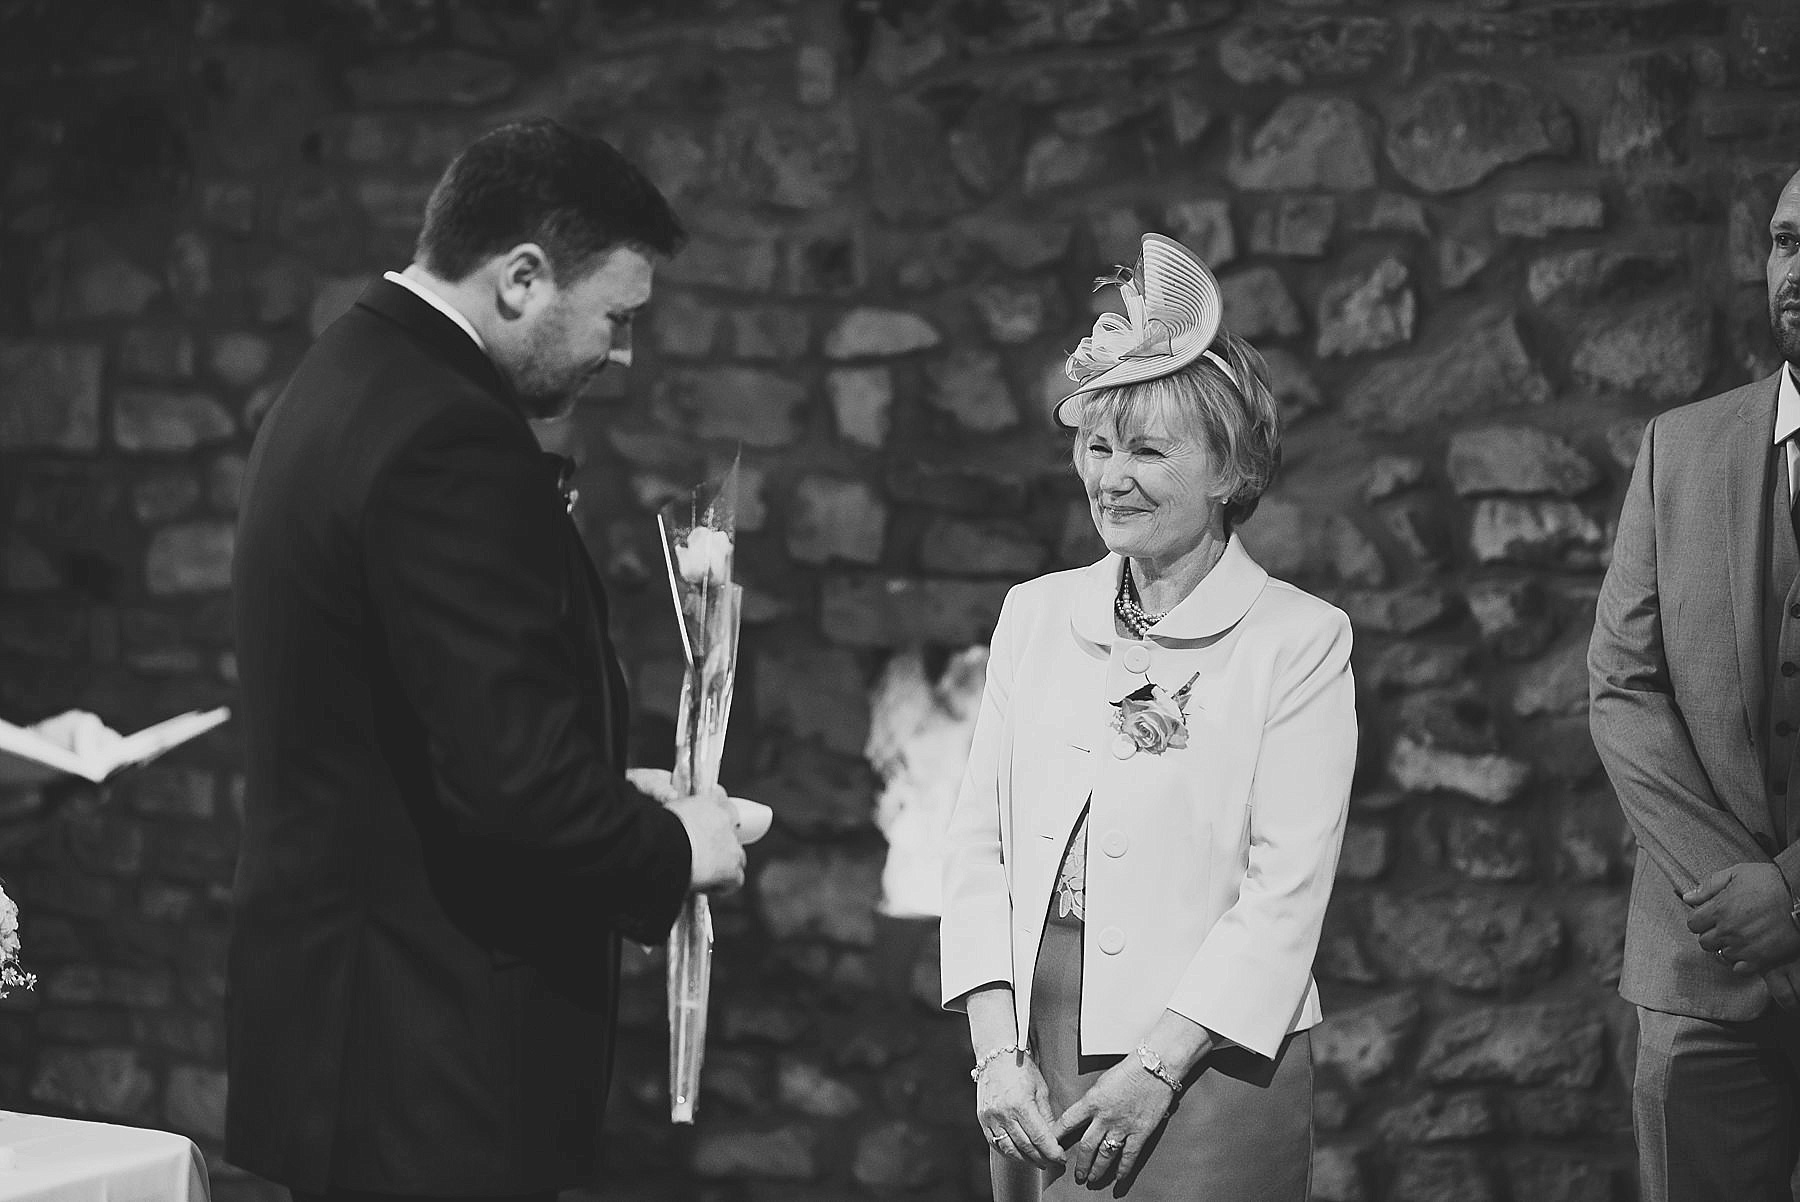 Mum smiling at her son the groom